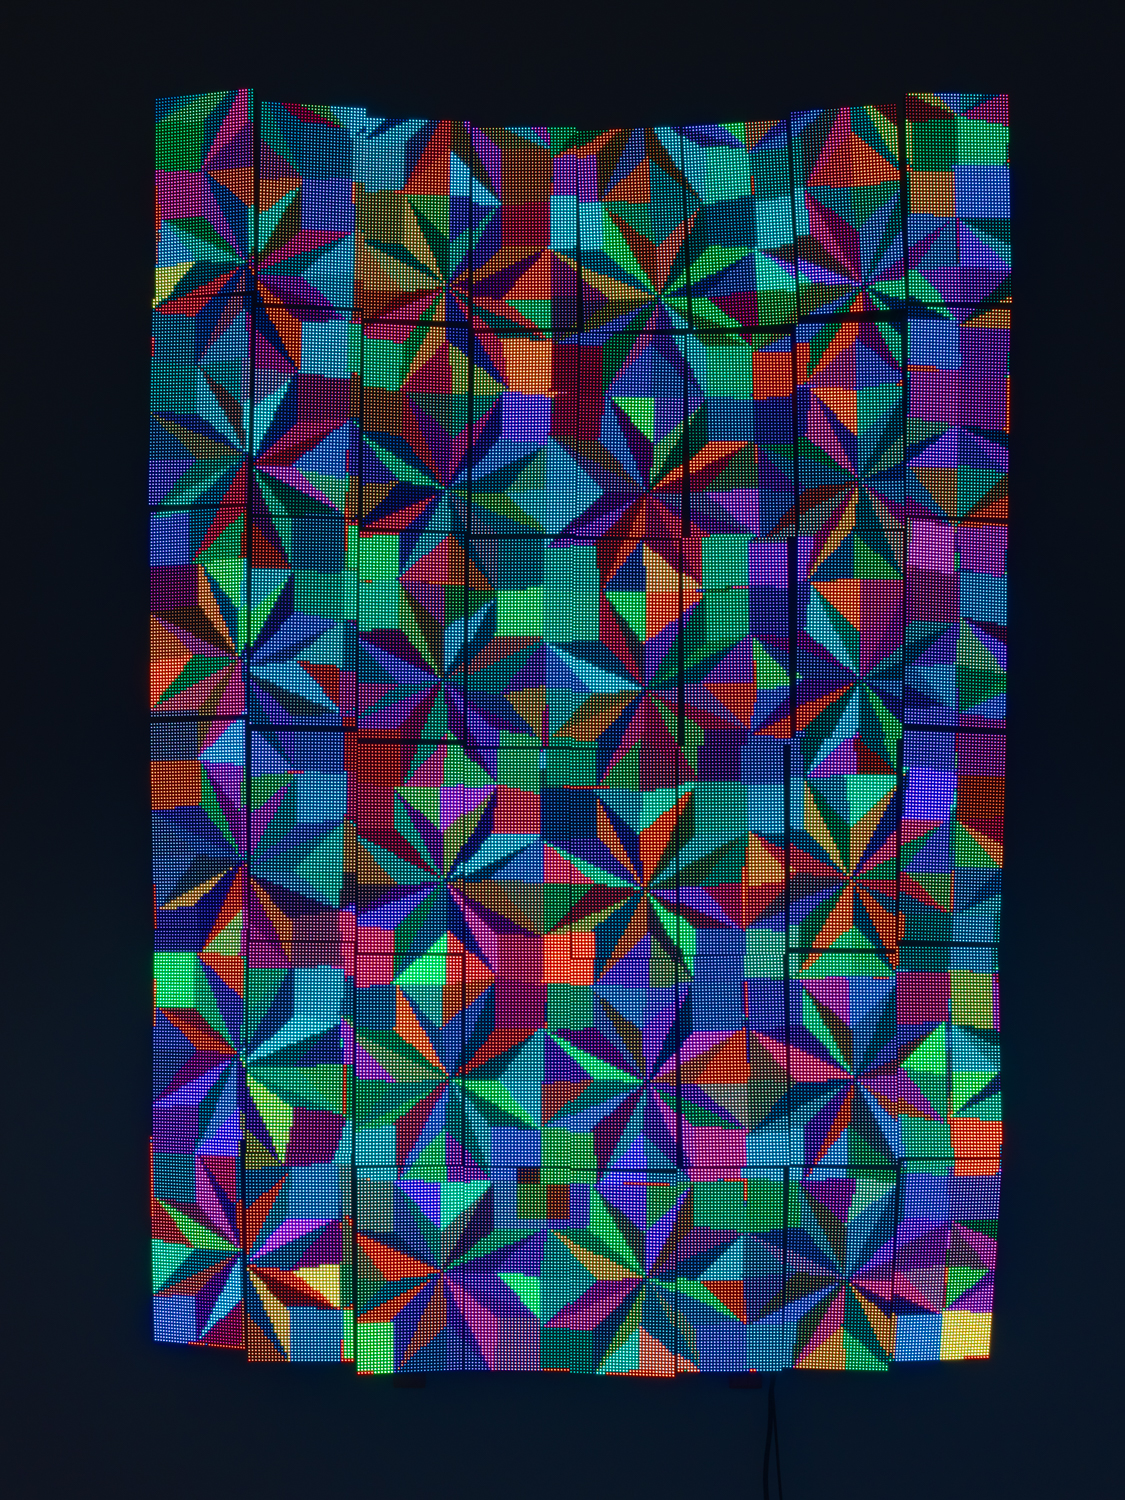 Luke Murphy  StarQuilt  2019 P4 LED Matrix Panels, animation code, mini-PC running Linux, power supplies, aluminum, wire or MDF armature. Technical: Python3 scripts and software, Gigabyte brand i3 mini-PC, running Lubuntu Linux, Linsn receiver card, sender card, 5v 40A 125/220v AC power supplies 63h x 41w x 3d in LMurph002